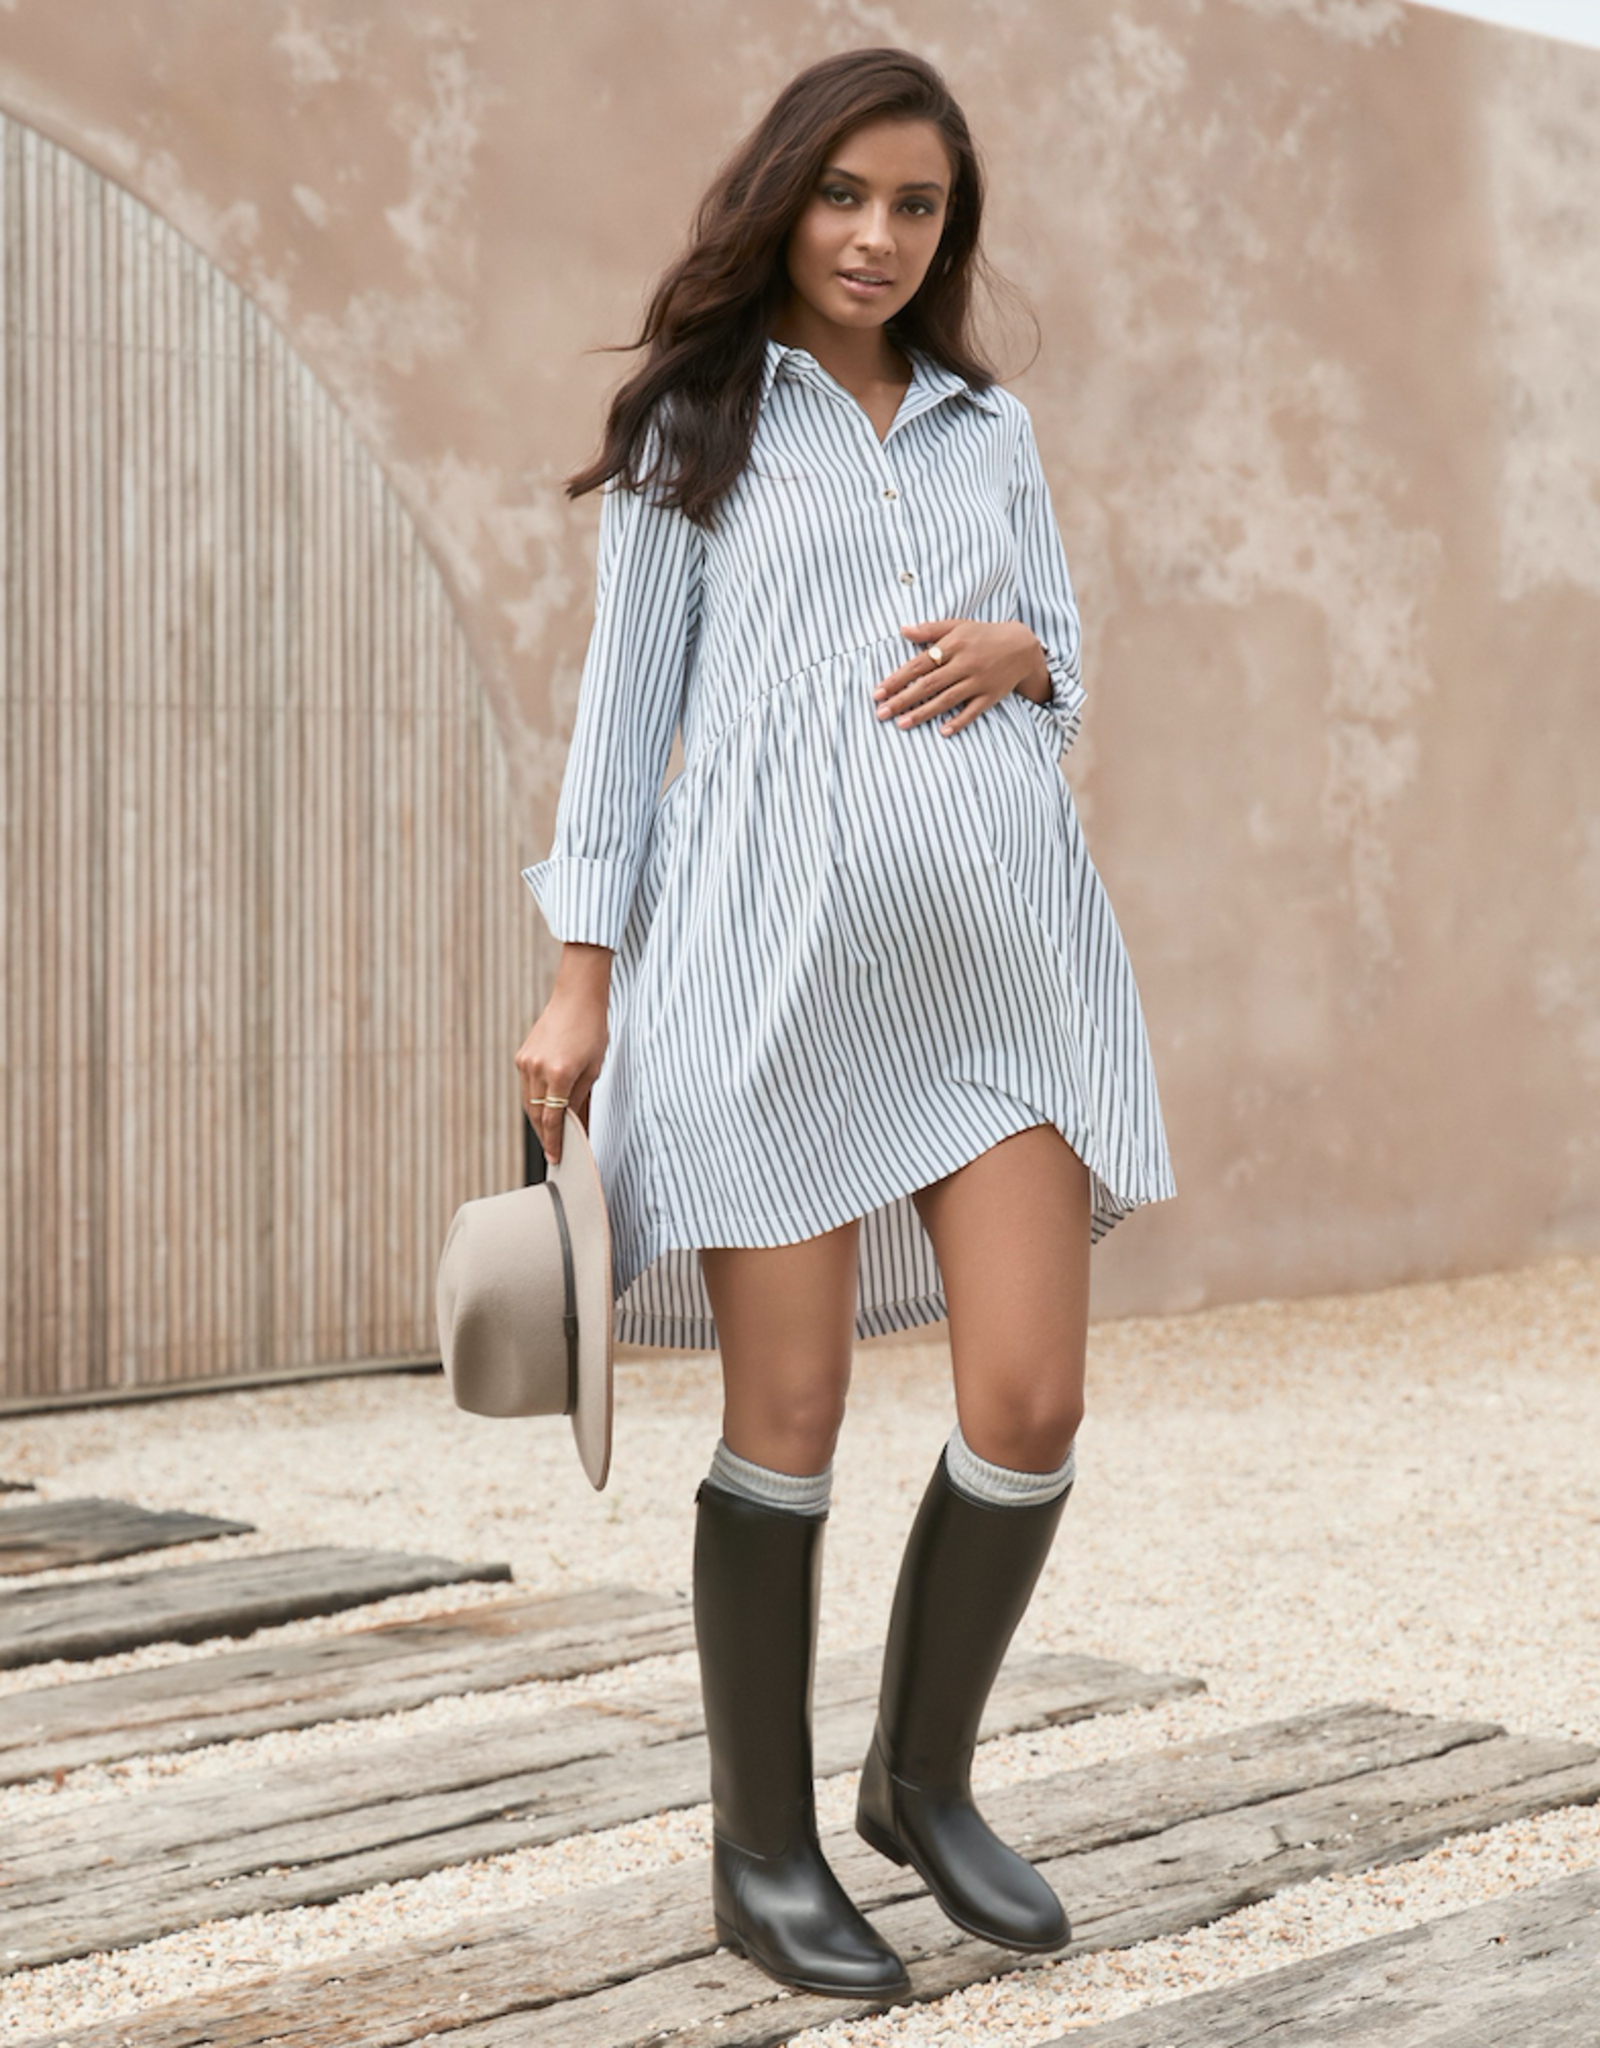 Legoe Heritage Sienna Shirtdress in Black Stripe